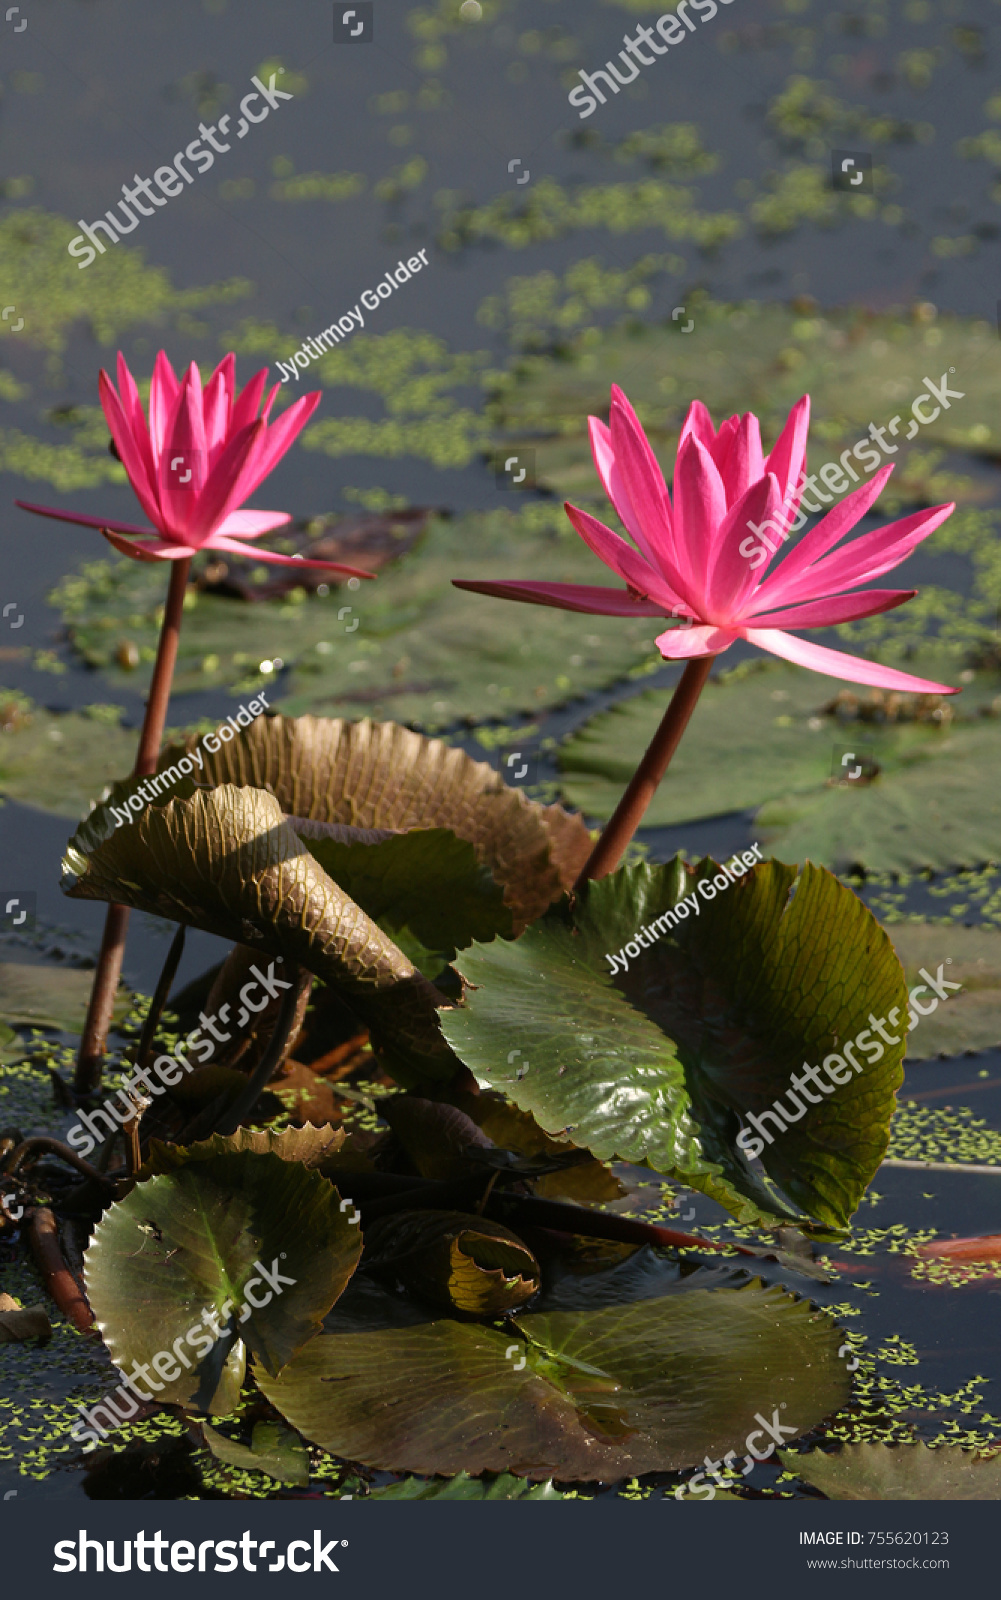 Red water lily beautiful floating plant stock photo edit now red water lily is a beautiful floating plant native to india it is widely cultivated izmirmasajfo